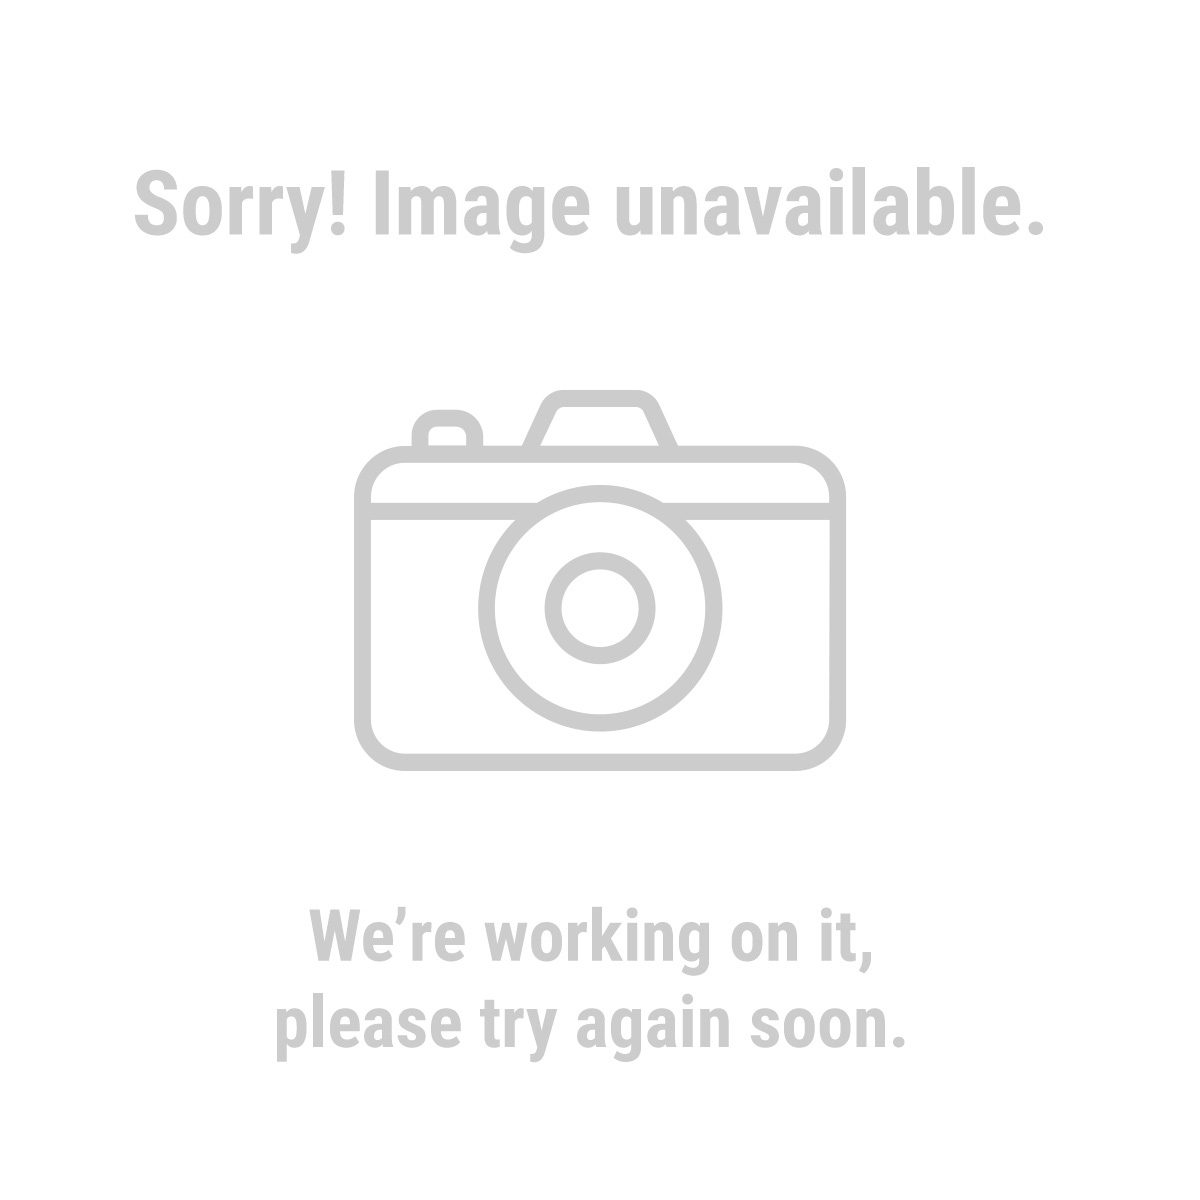 Pittsburgh Automotive 60407 4 Ton Heavy Duty Portable Hydraulic Equipment Kit